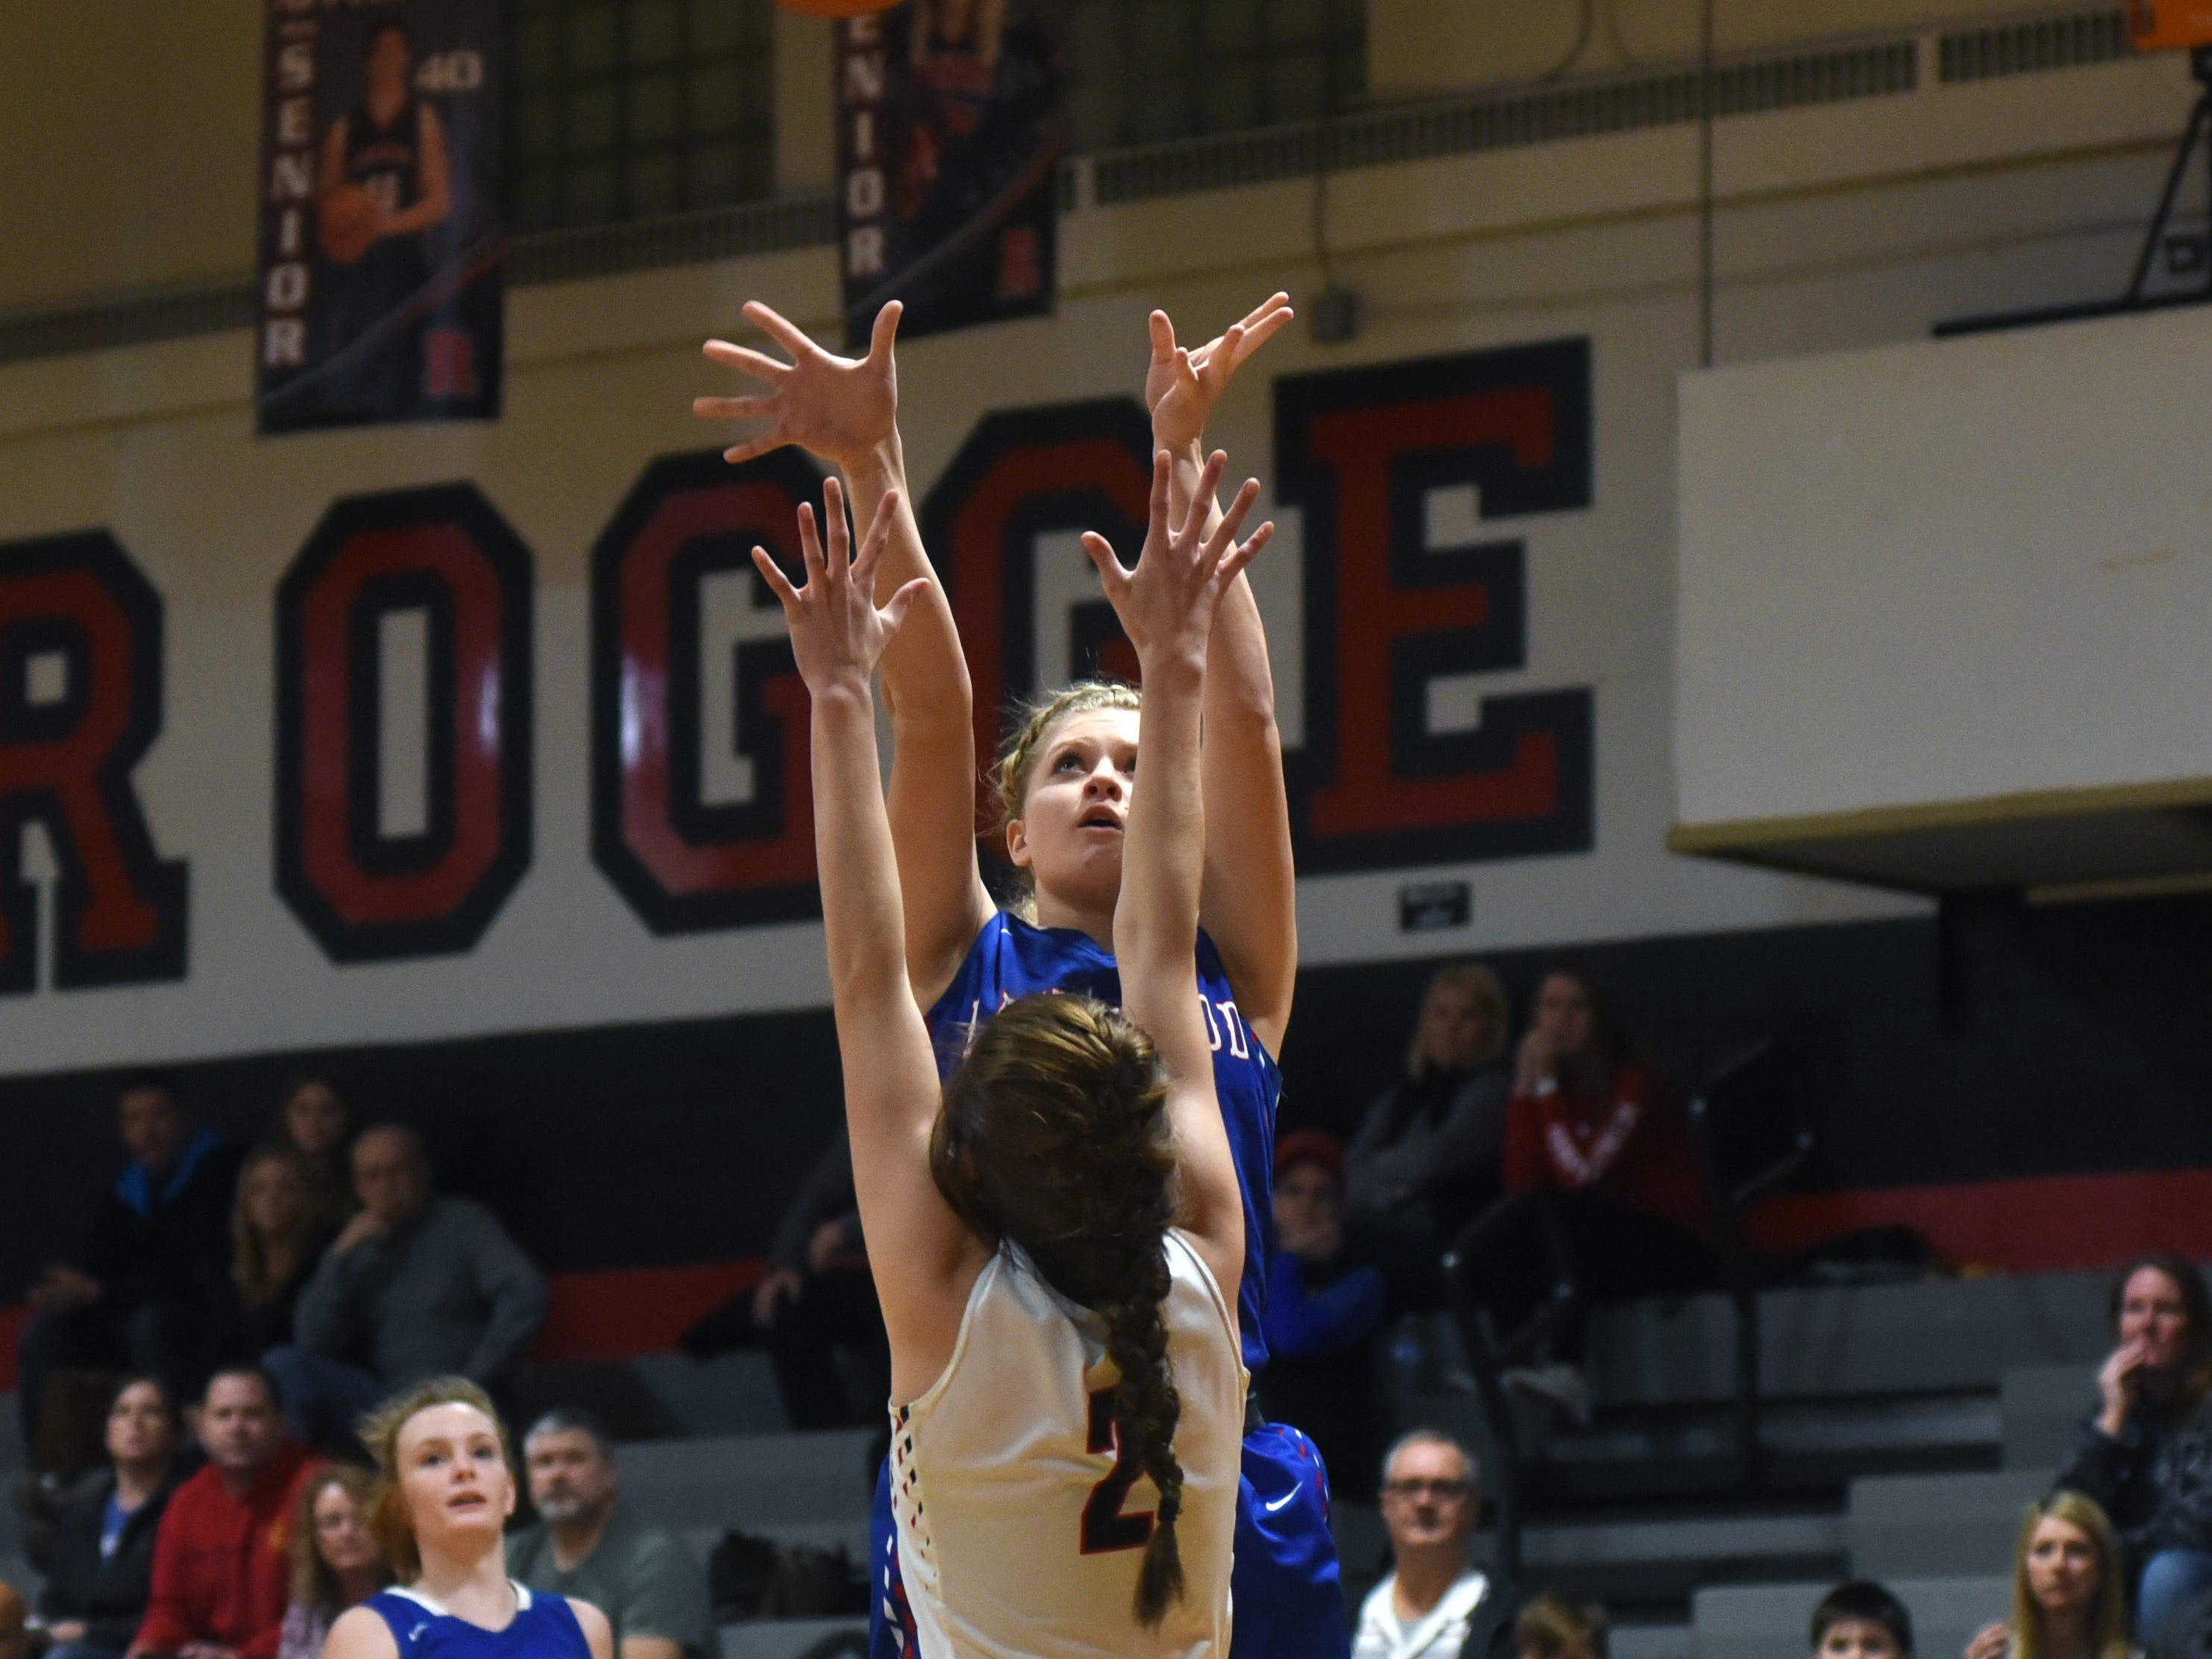 Camryn Martindale, of Lakewood, shoots over Rosecrans' Kailey Zemba on Monday night at Rogge Gymnasium.